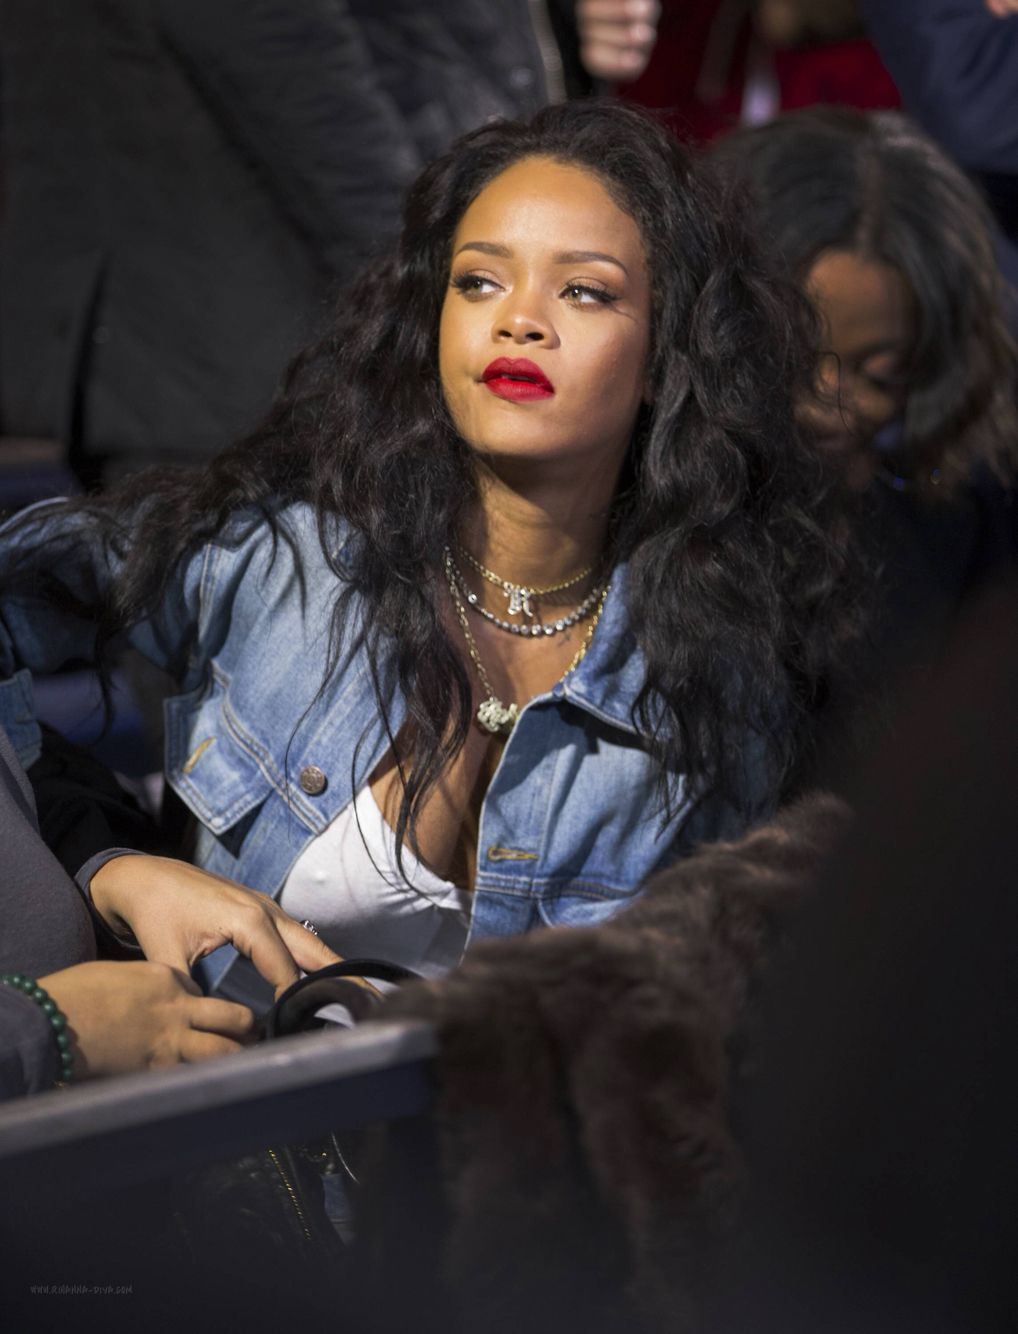 rihanna street style candids 2014 x longanna long black curly hair